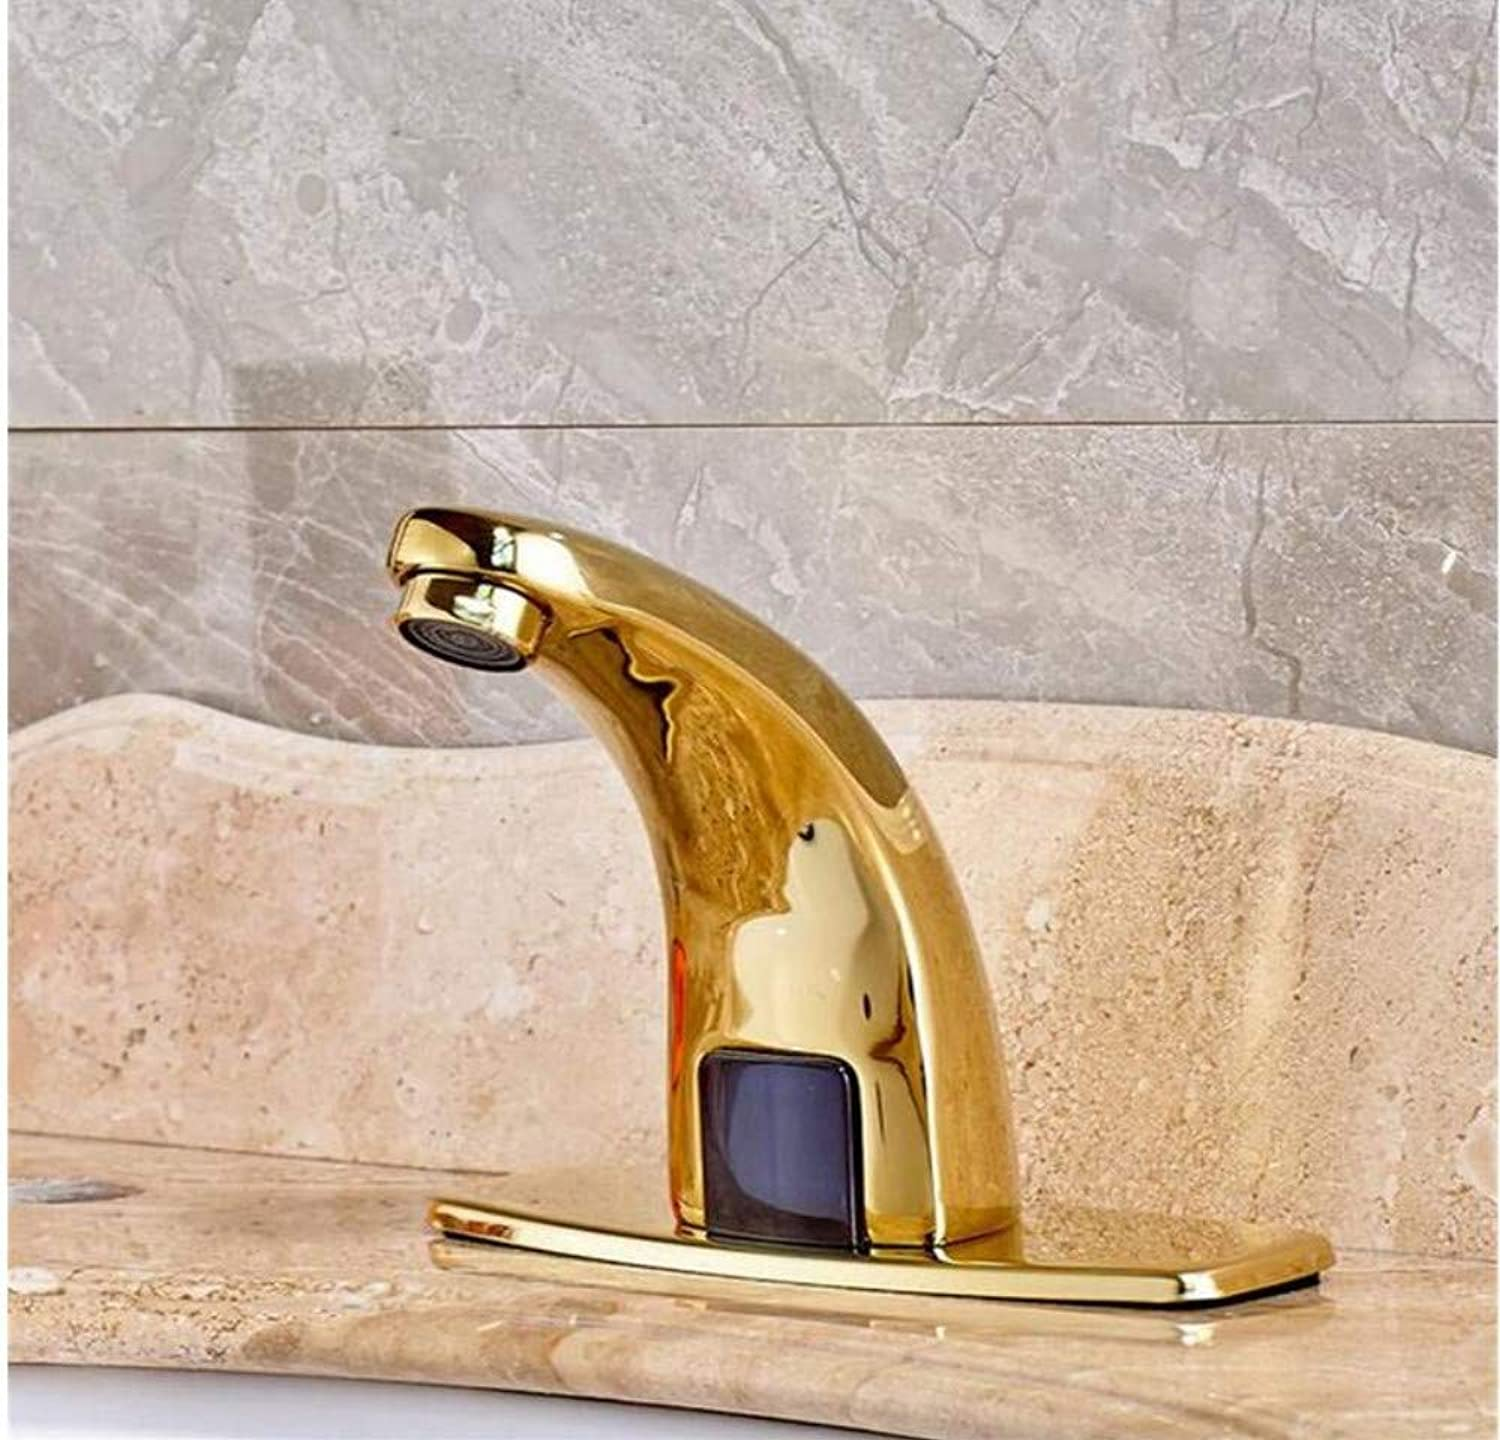 Chrome-Plated Adjustable Temperature-Sensitive Led Faucetfaucets 360 Degree Hot Cold Water Mixers Tap